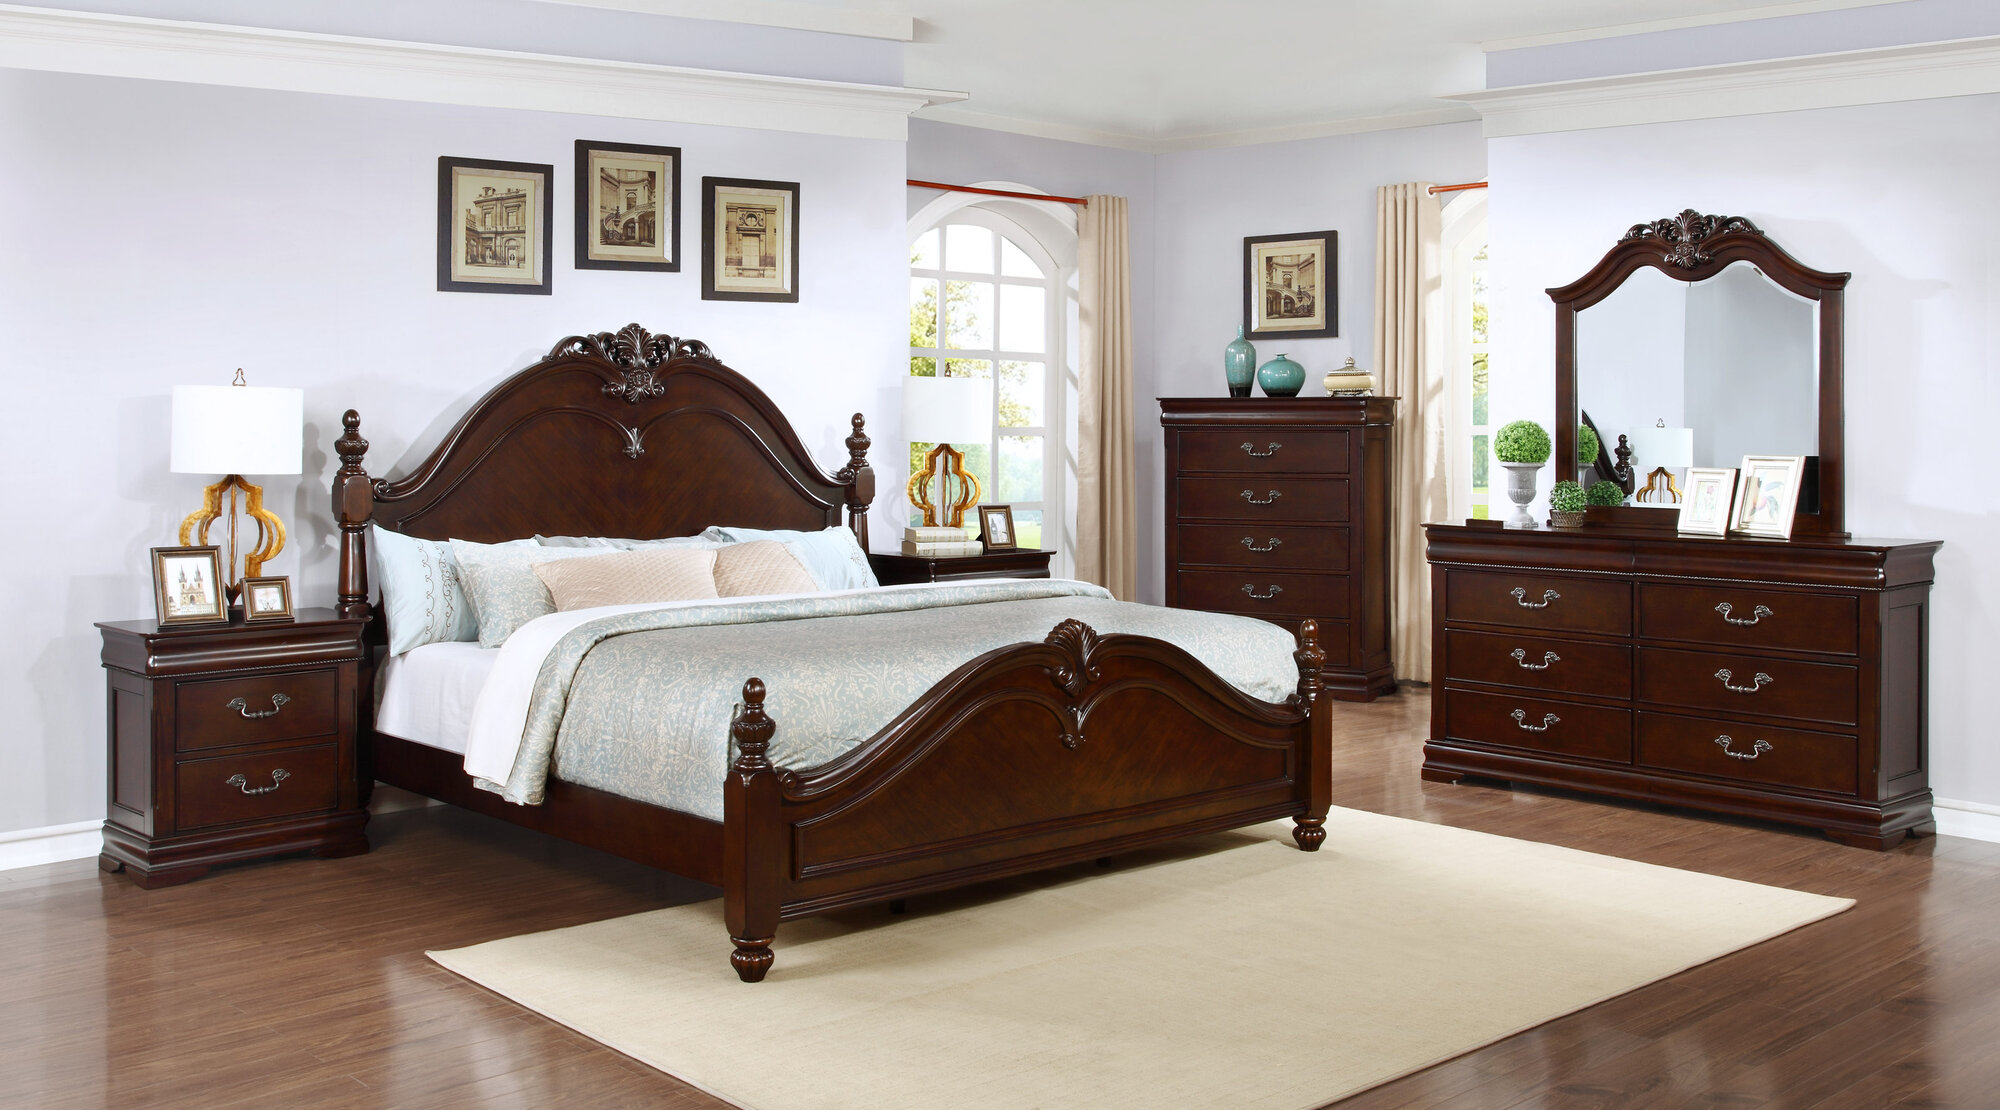 Best quality furniture panel 4 piece bedroom set ebay for Best place for bedroom furniture